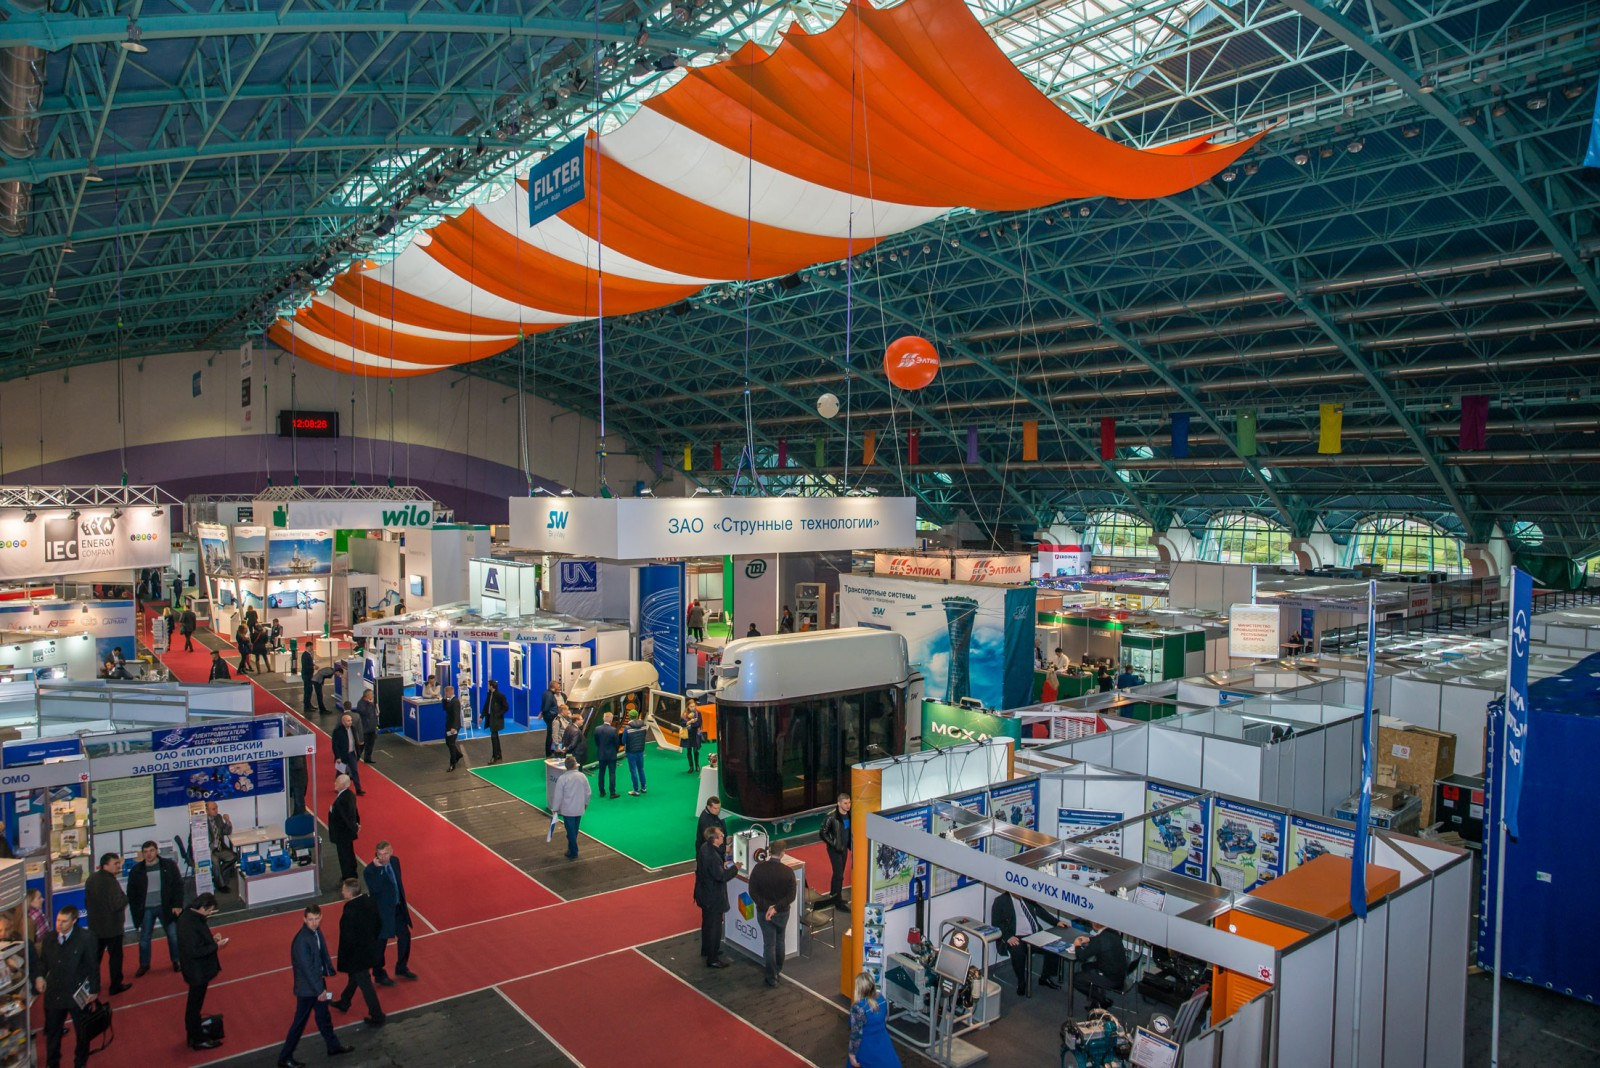 Photo Report from Exhibition Energy Expo 2016